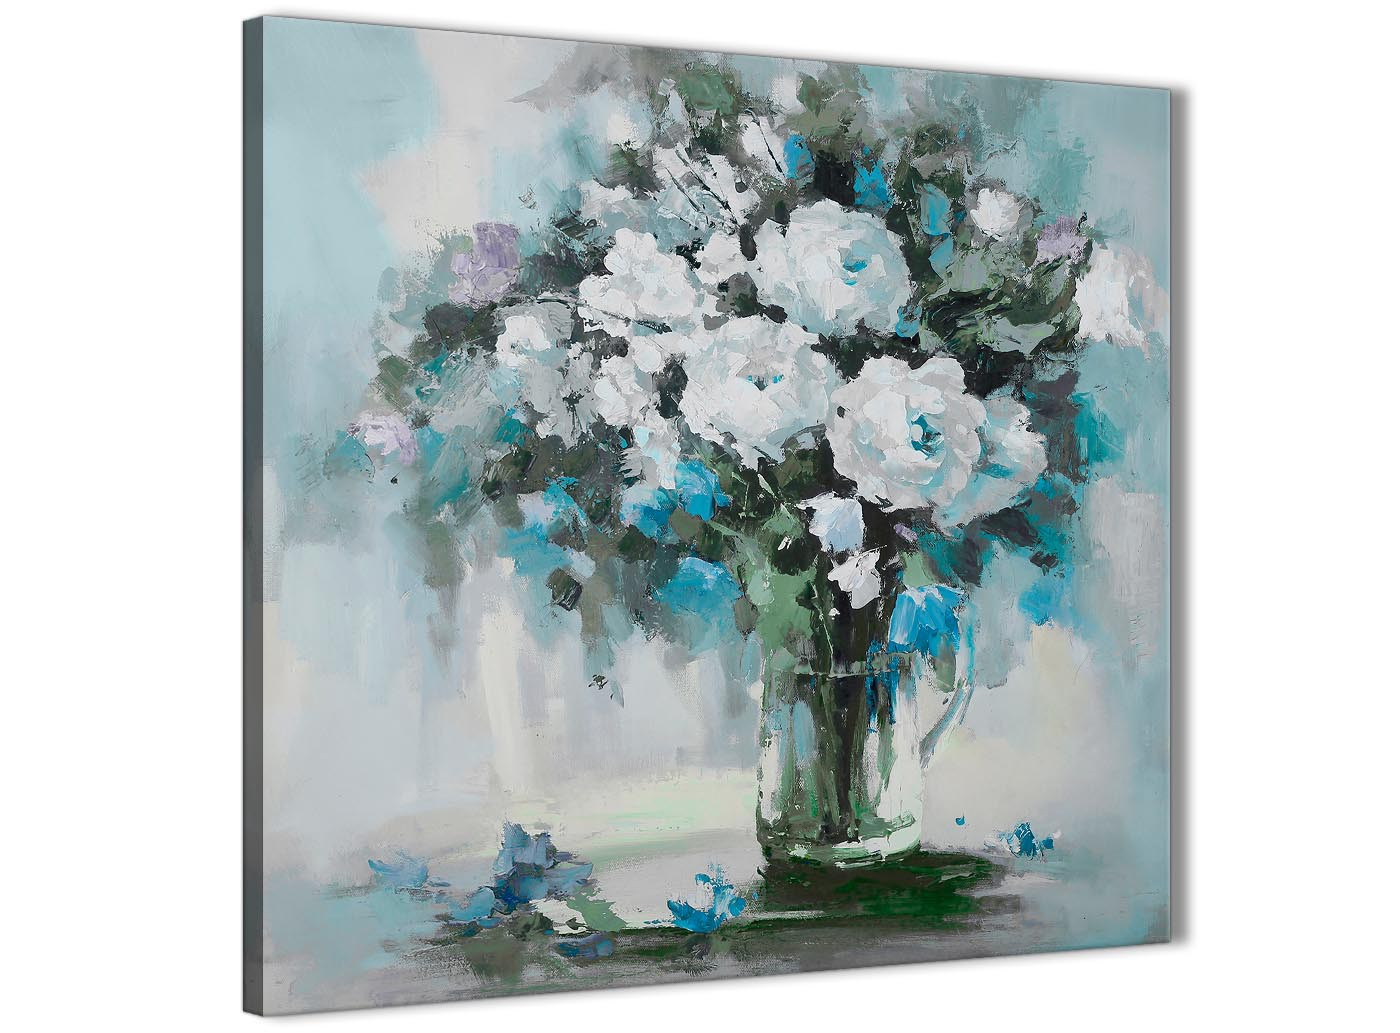 Teal White Flowers Painting Bathroom Canvas Wall Art Accessories Abstract 1s440s 49cm Square